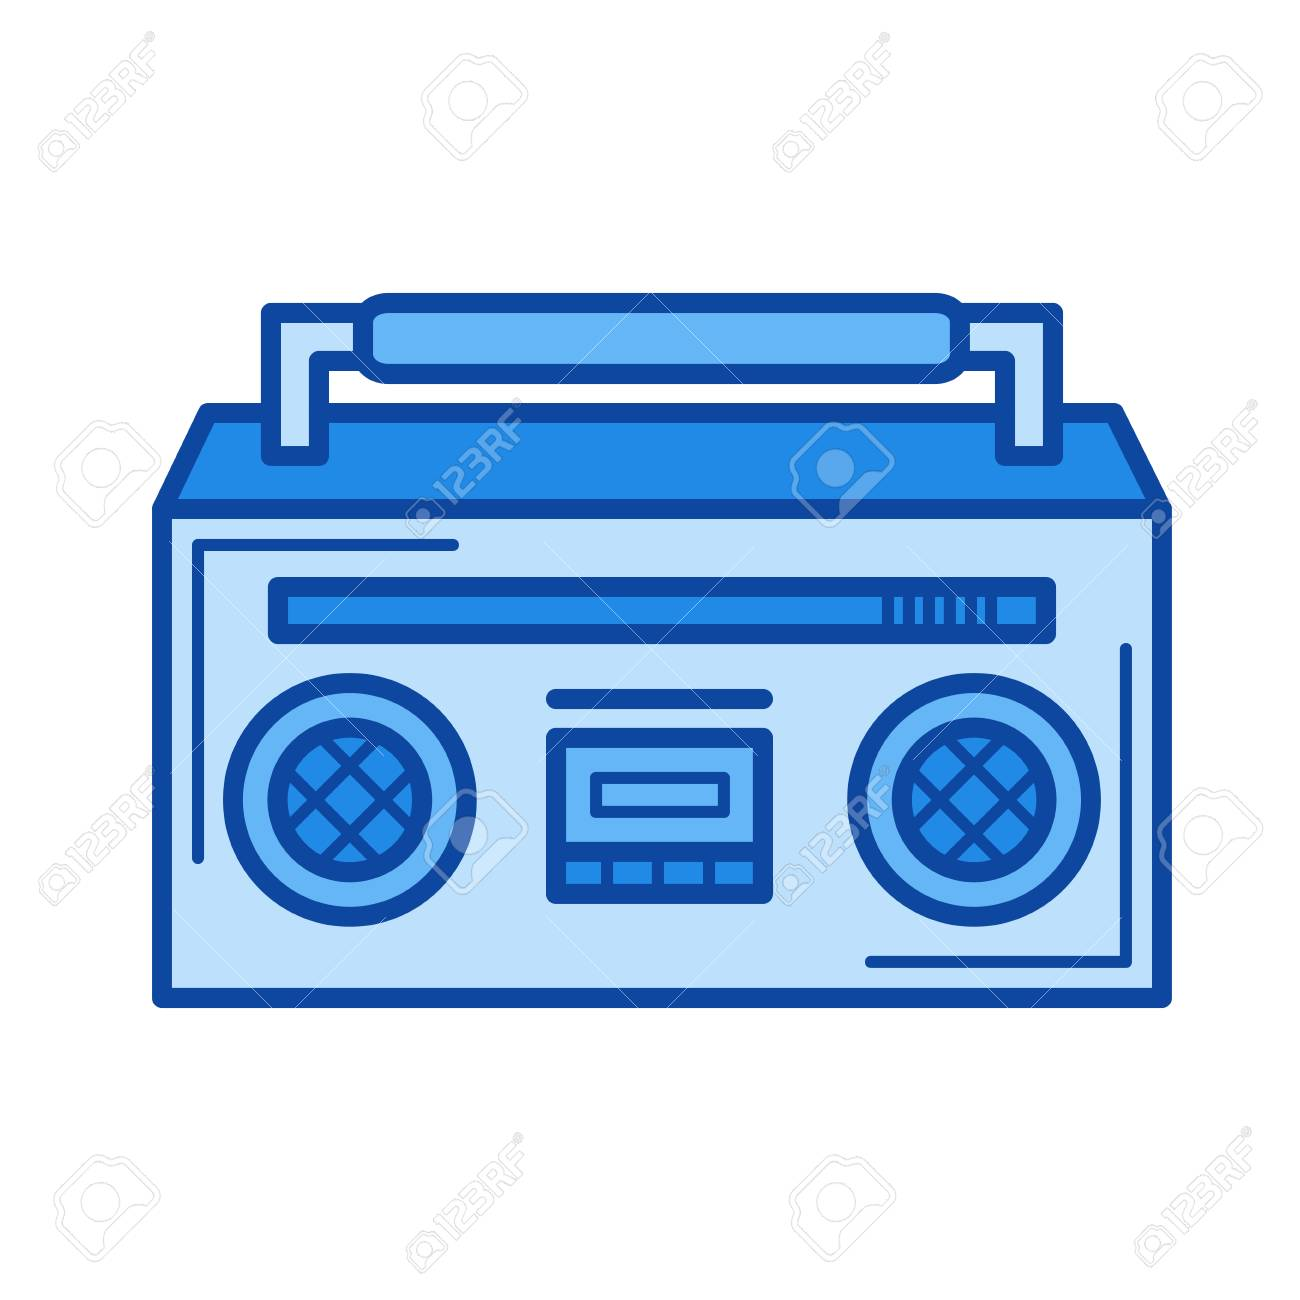 boombox vector line icon isolated on white background boombox rh 123rf com boombox vector art boombox vector art